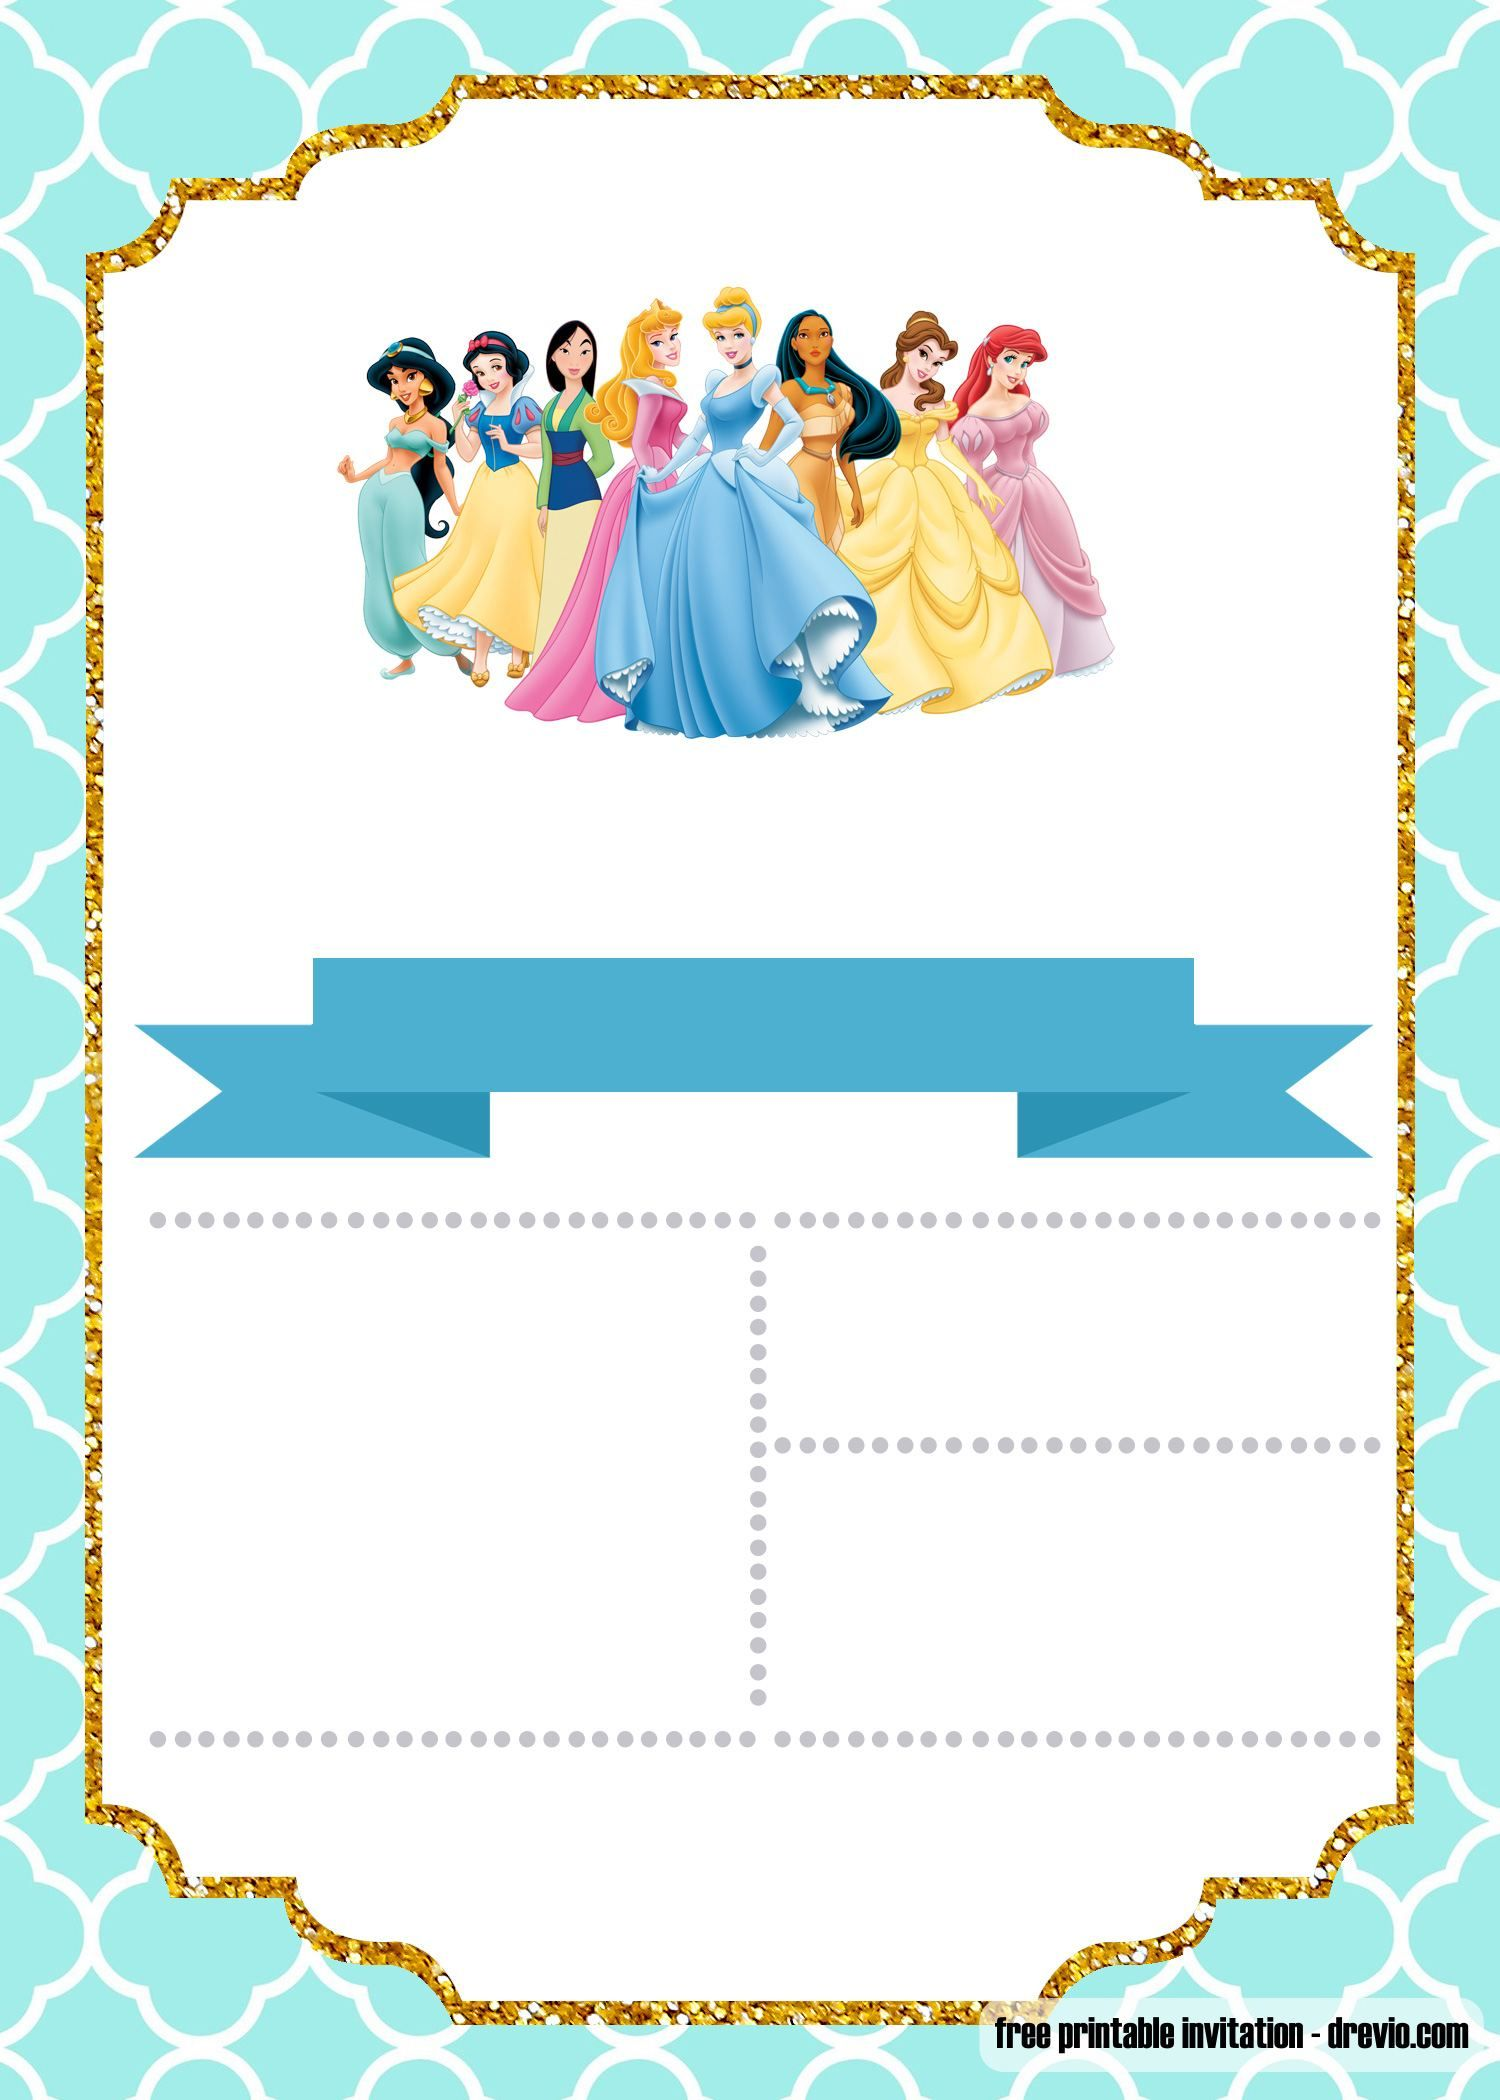 FREE Disney Princess Invitation Template For Your Little Girls